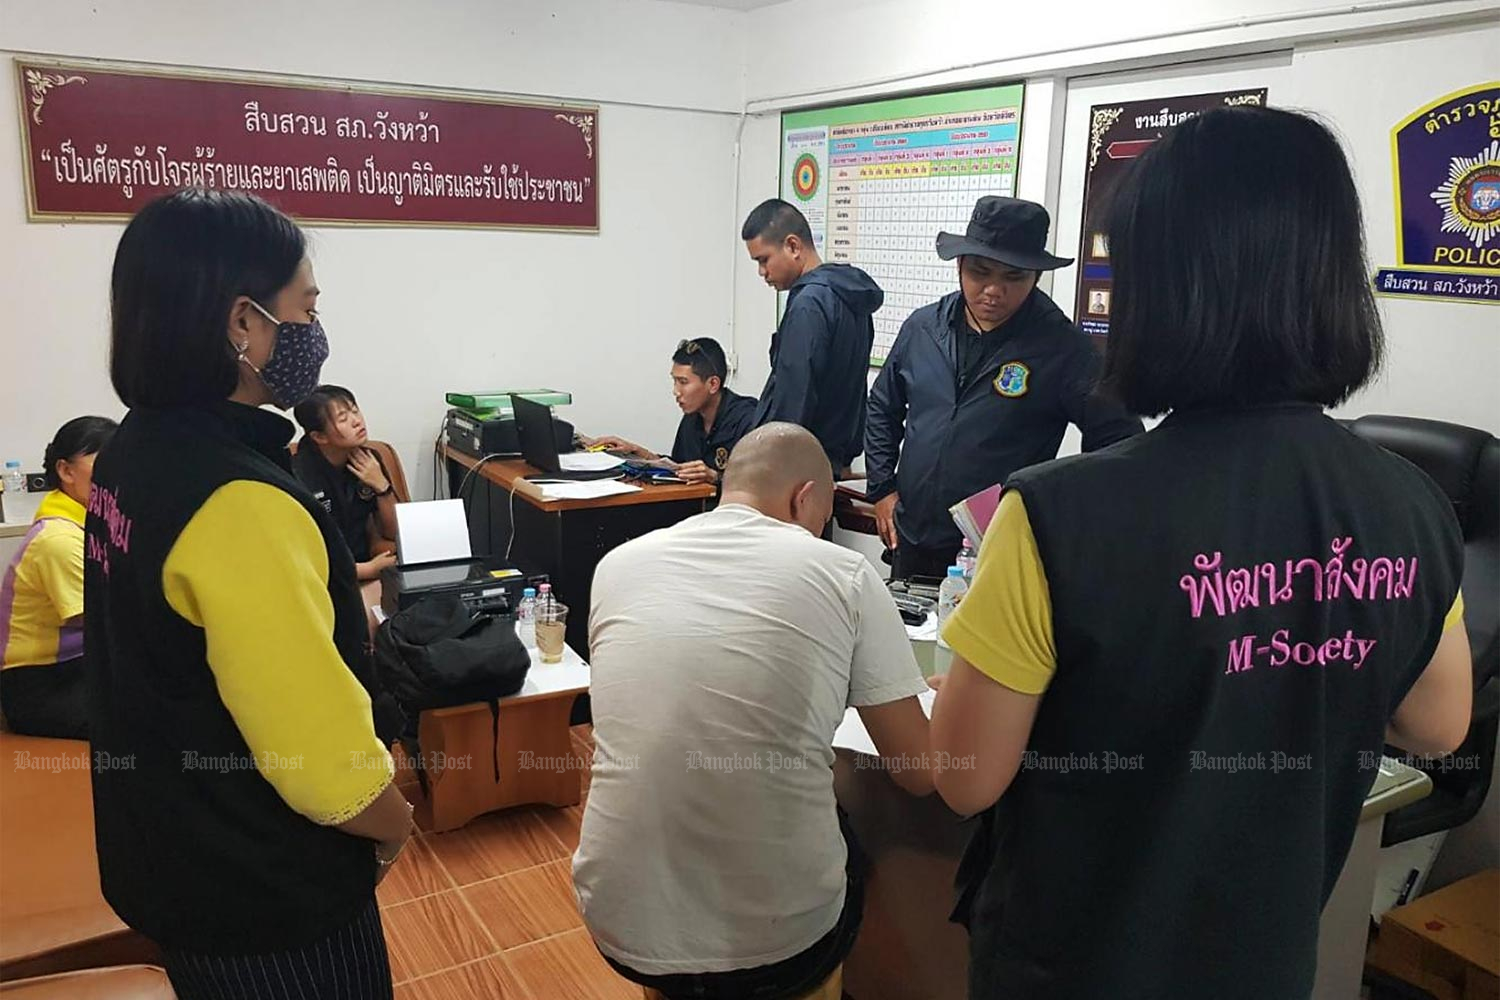 A man is arrested in Phitsanulok for forcing his 19-year-old girlfriend into group sex and selling her videos for customers via Twitter and Line. He was a Buddhist monk when the arrest took place.(Photo by Chinnawat Singha)